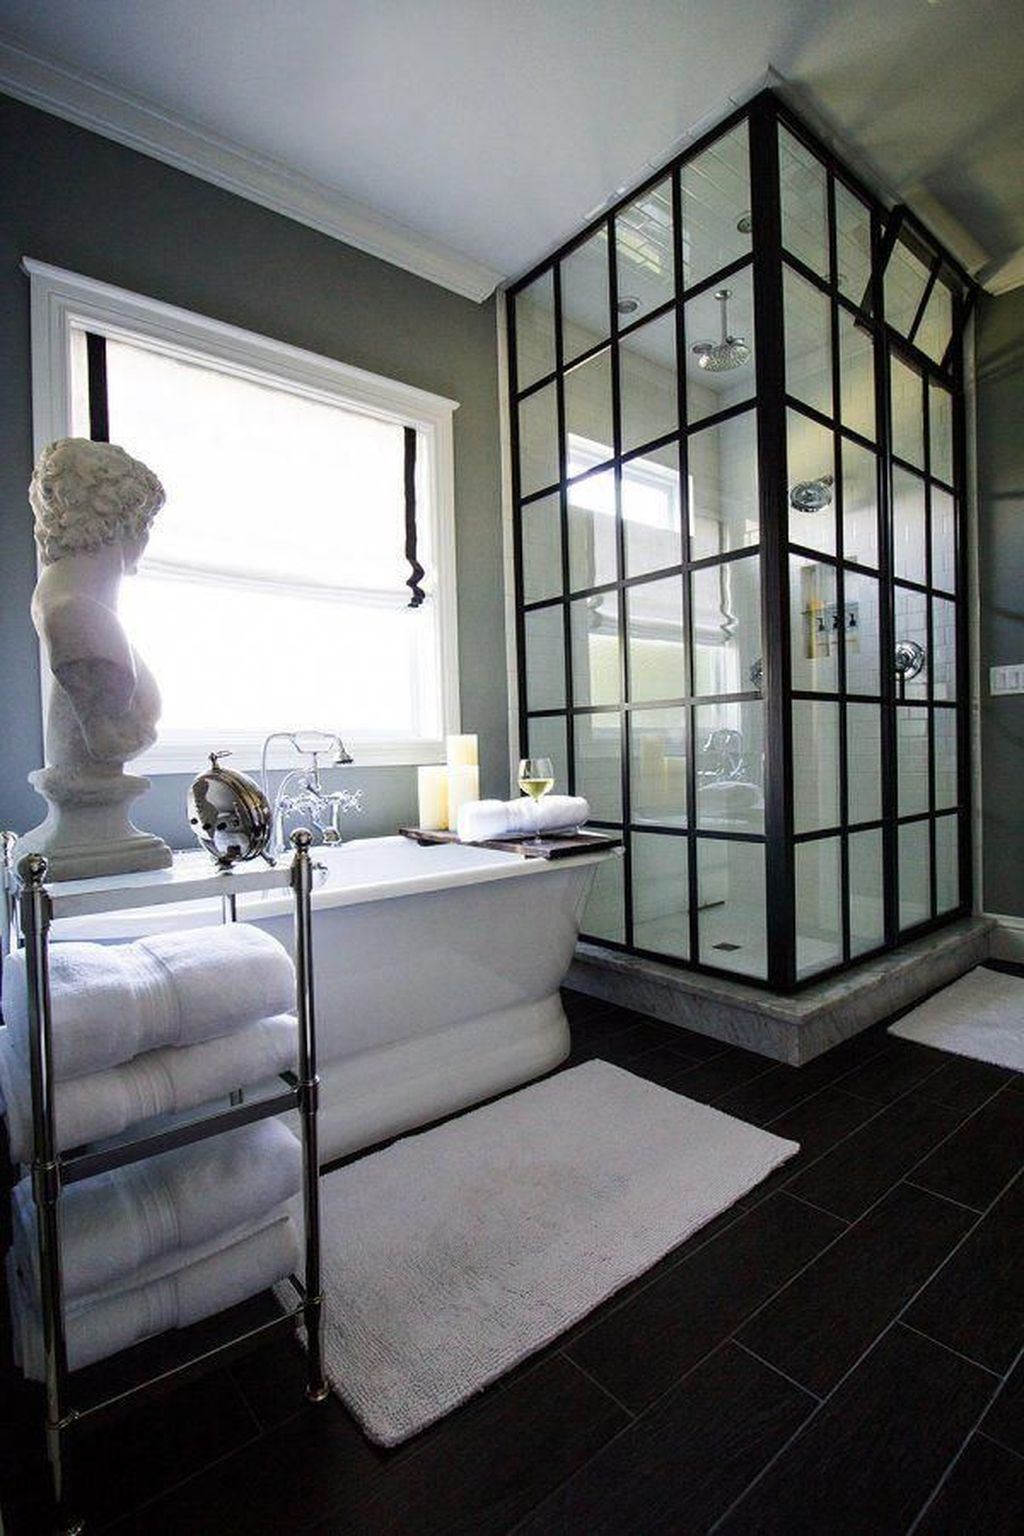 The Best Romantic Bathroom Ideas Perfect For Valentines Day 31